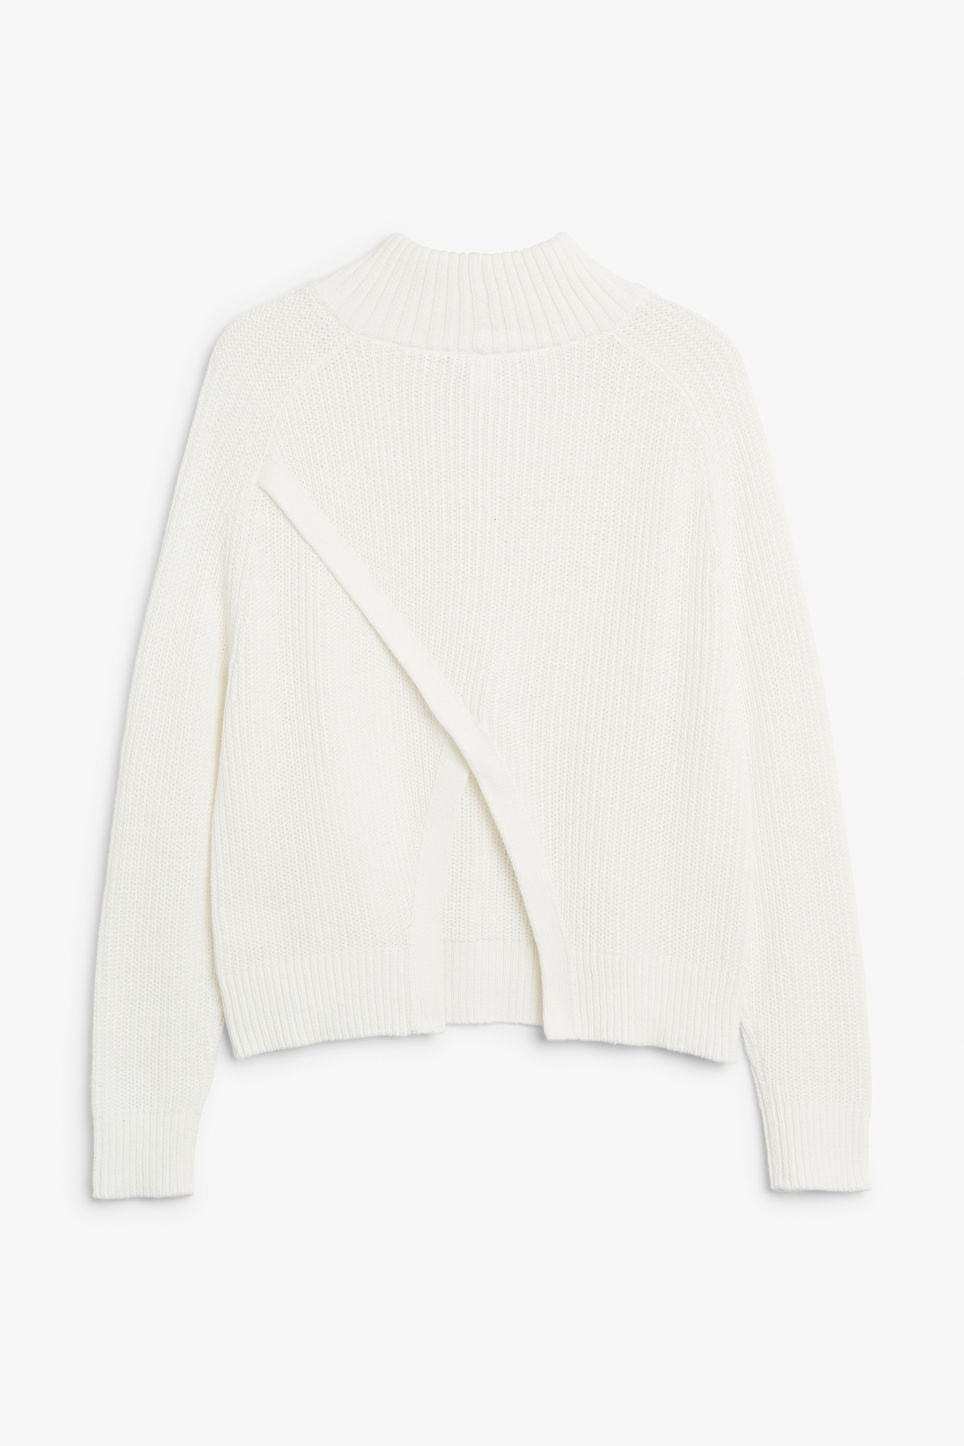 Back image of Monki knitted turtleneck top in white